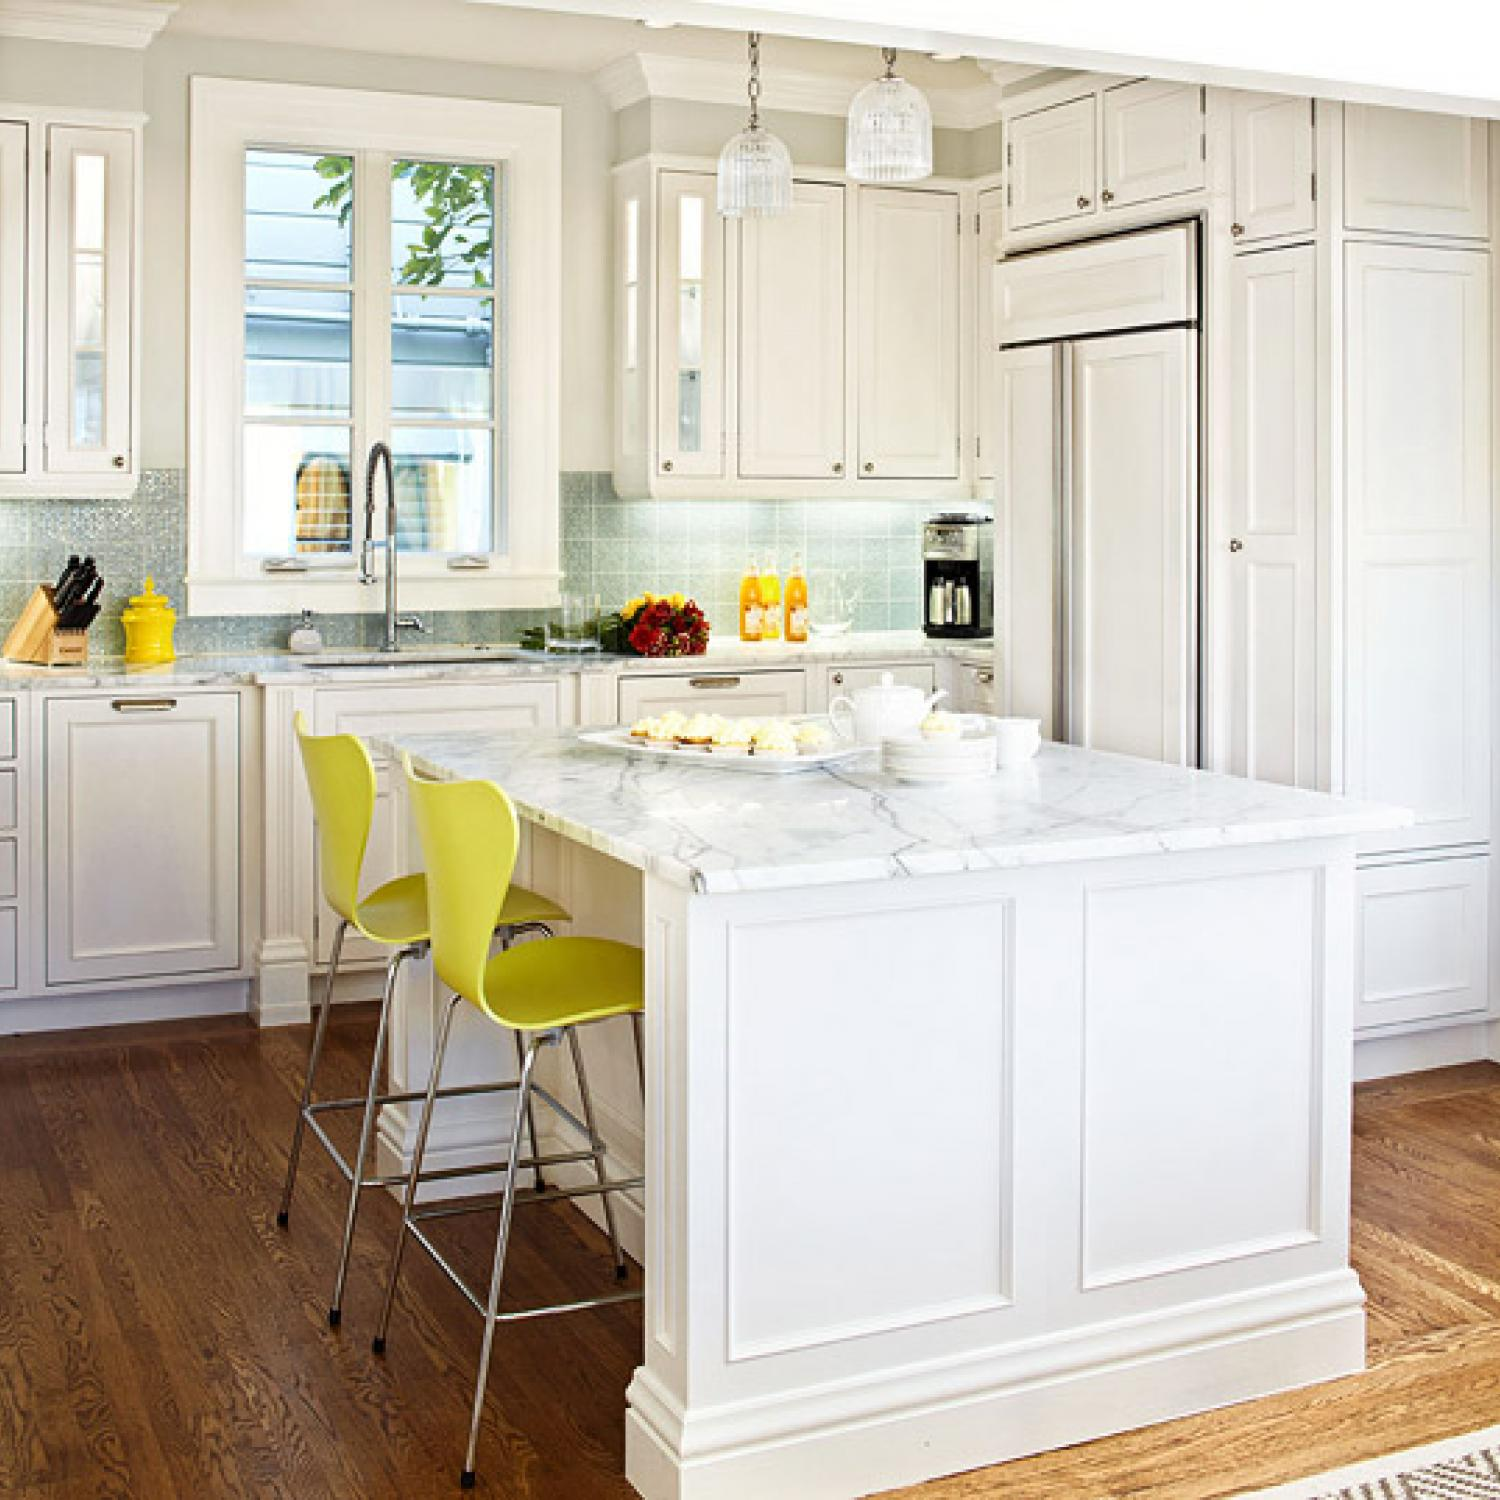 Design ideas for white kitchens traditional home for Pics of white kitchens